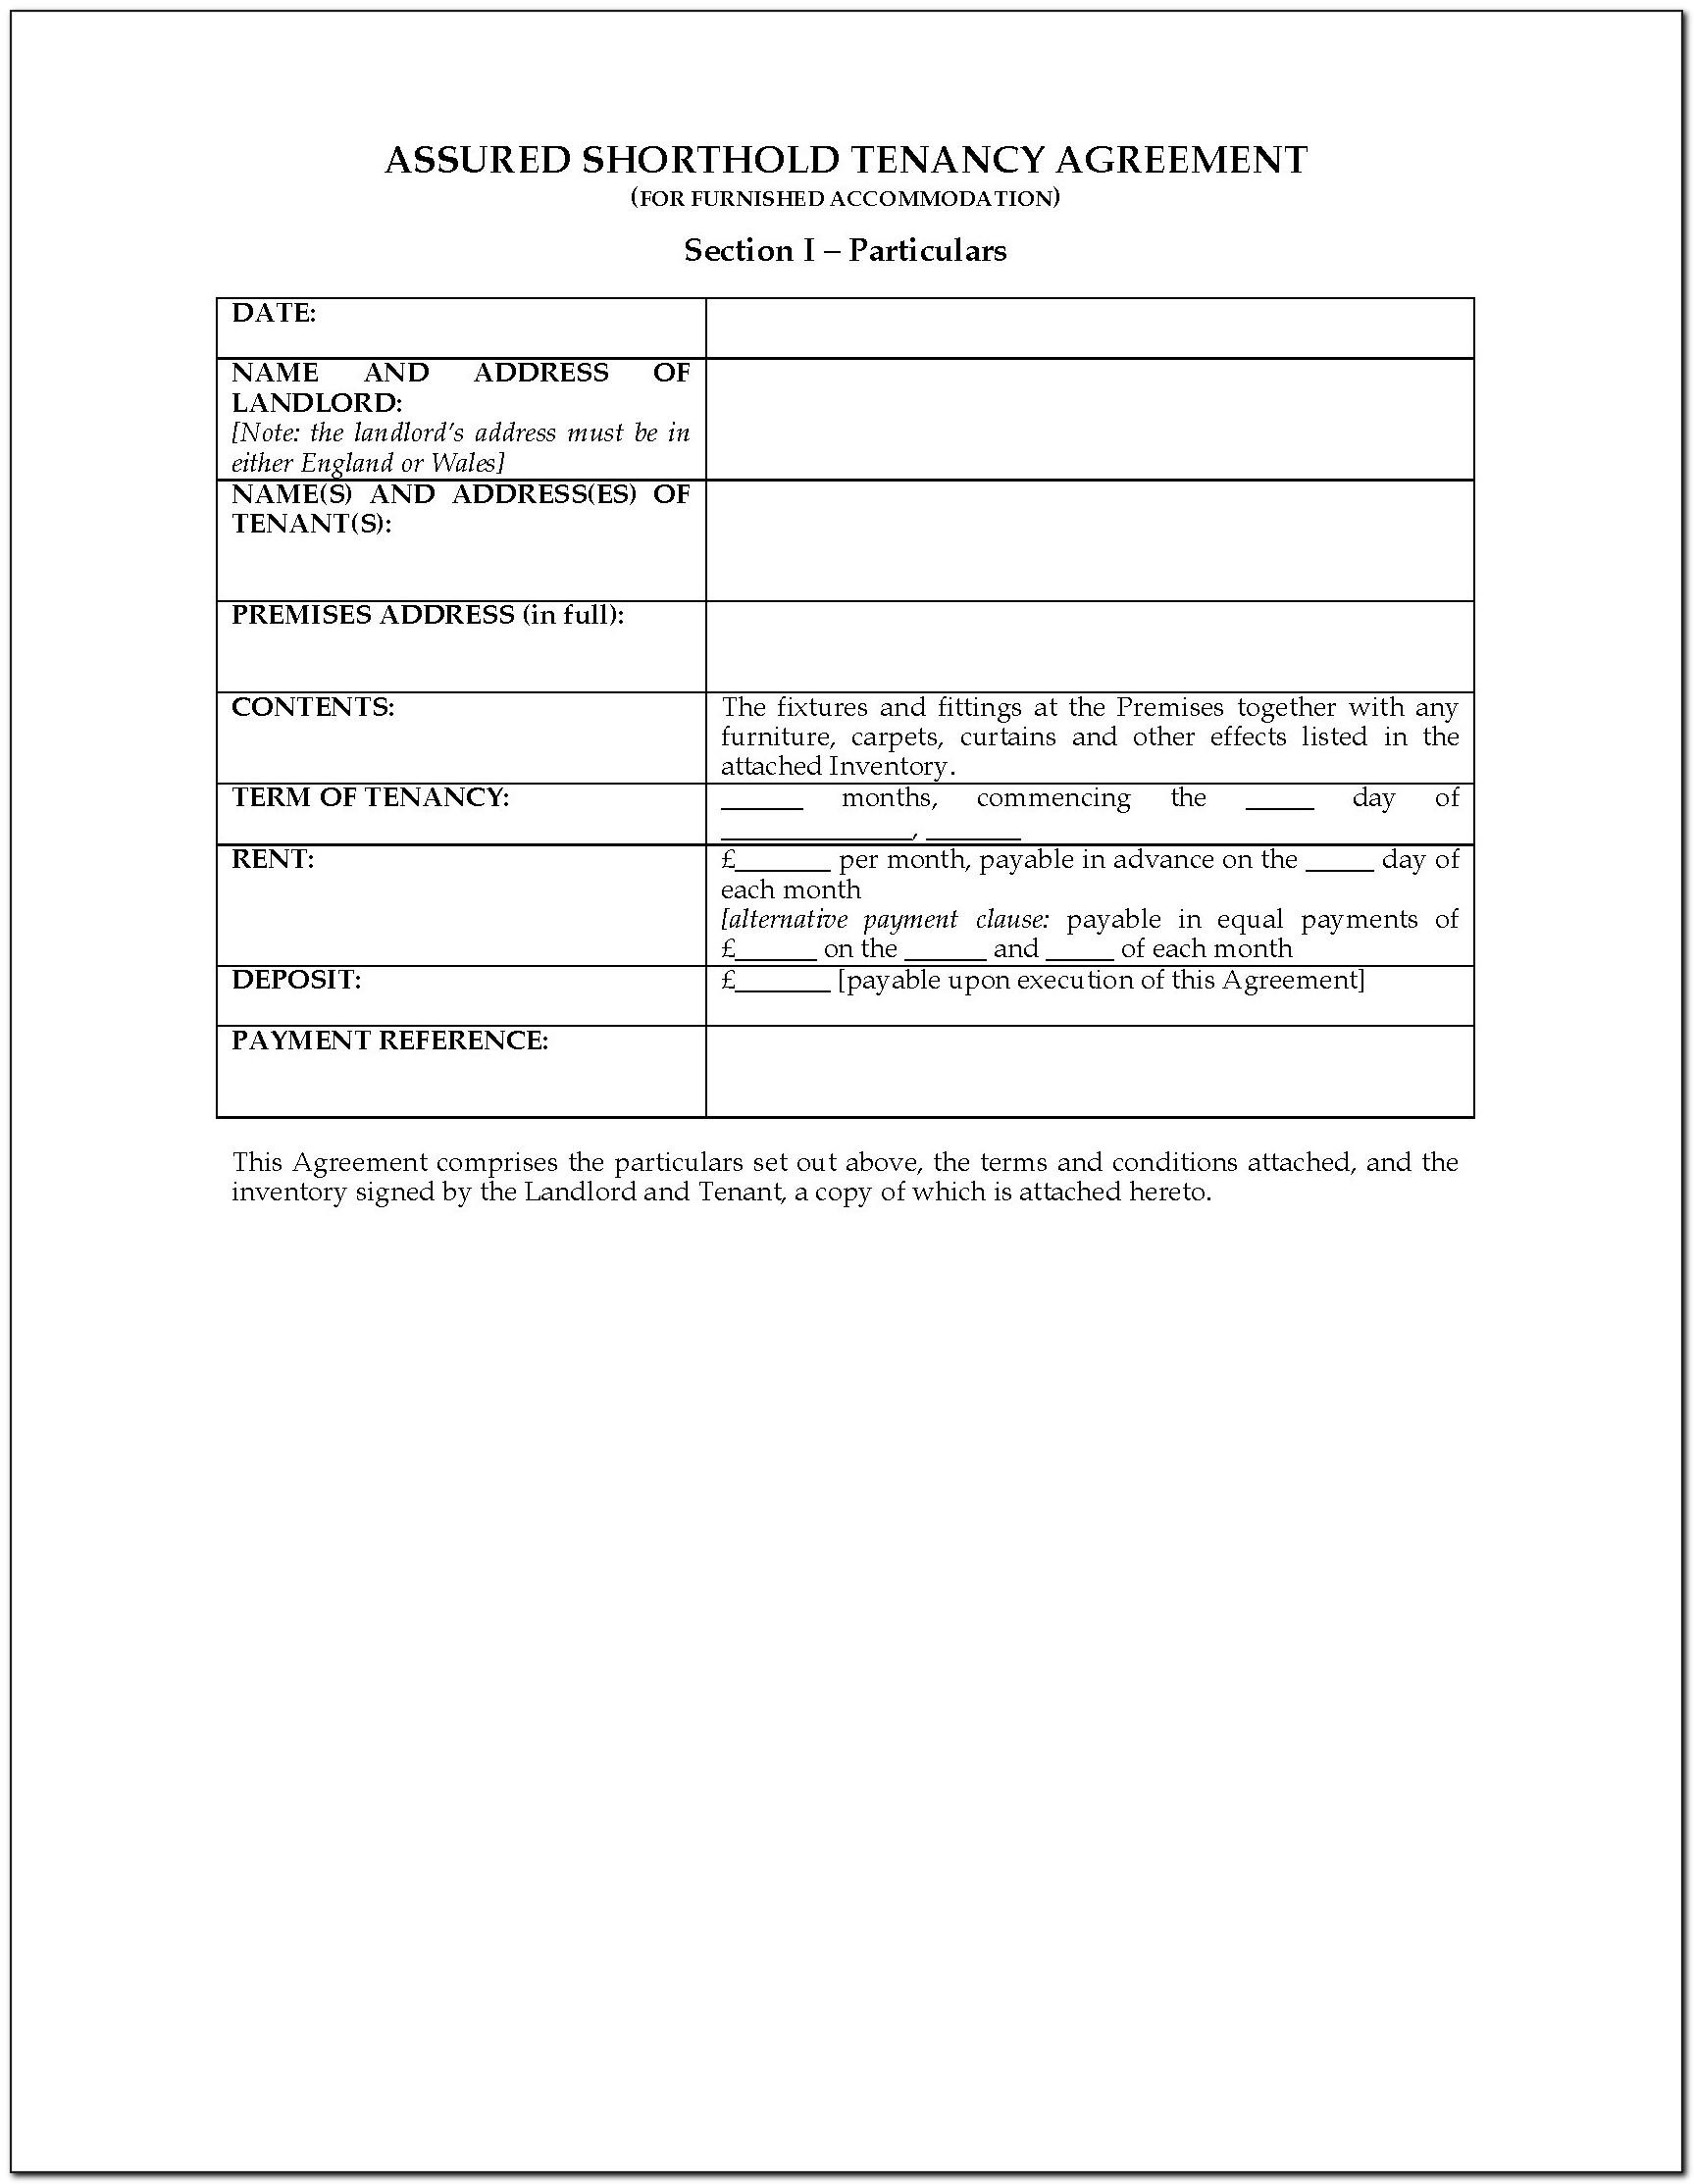 Short Assured Tenancy Agreement Template Scotland Free